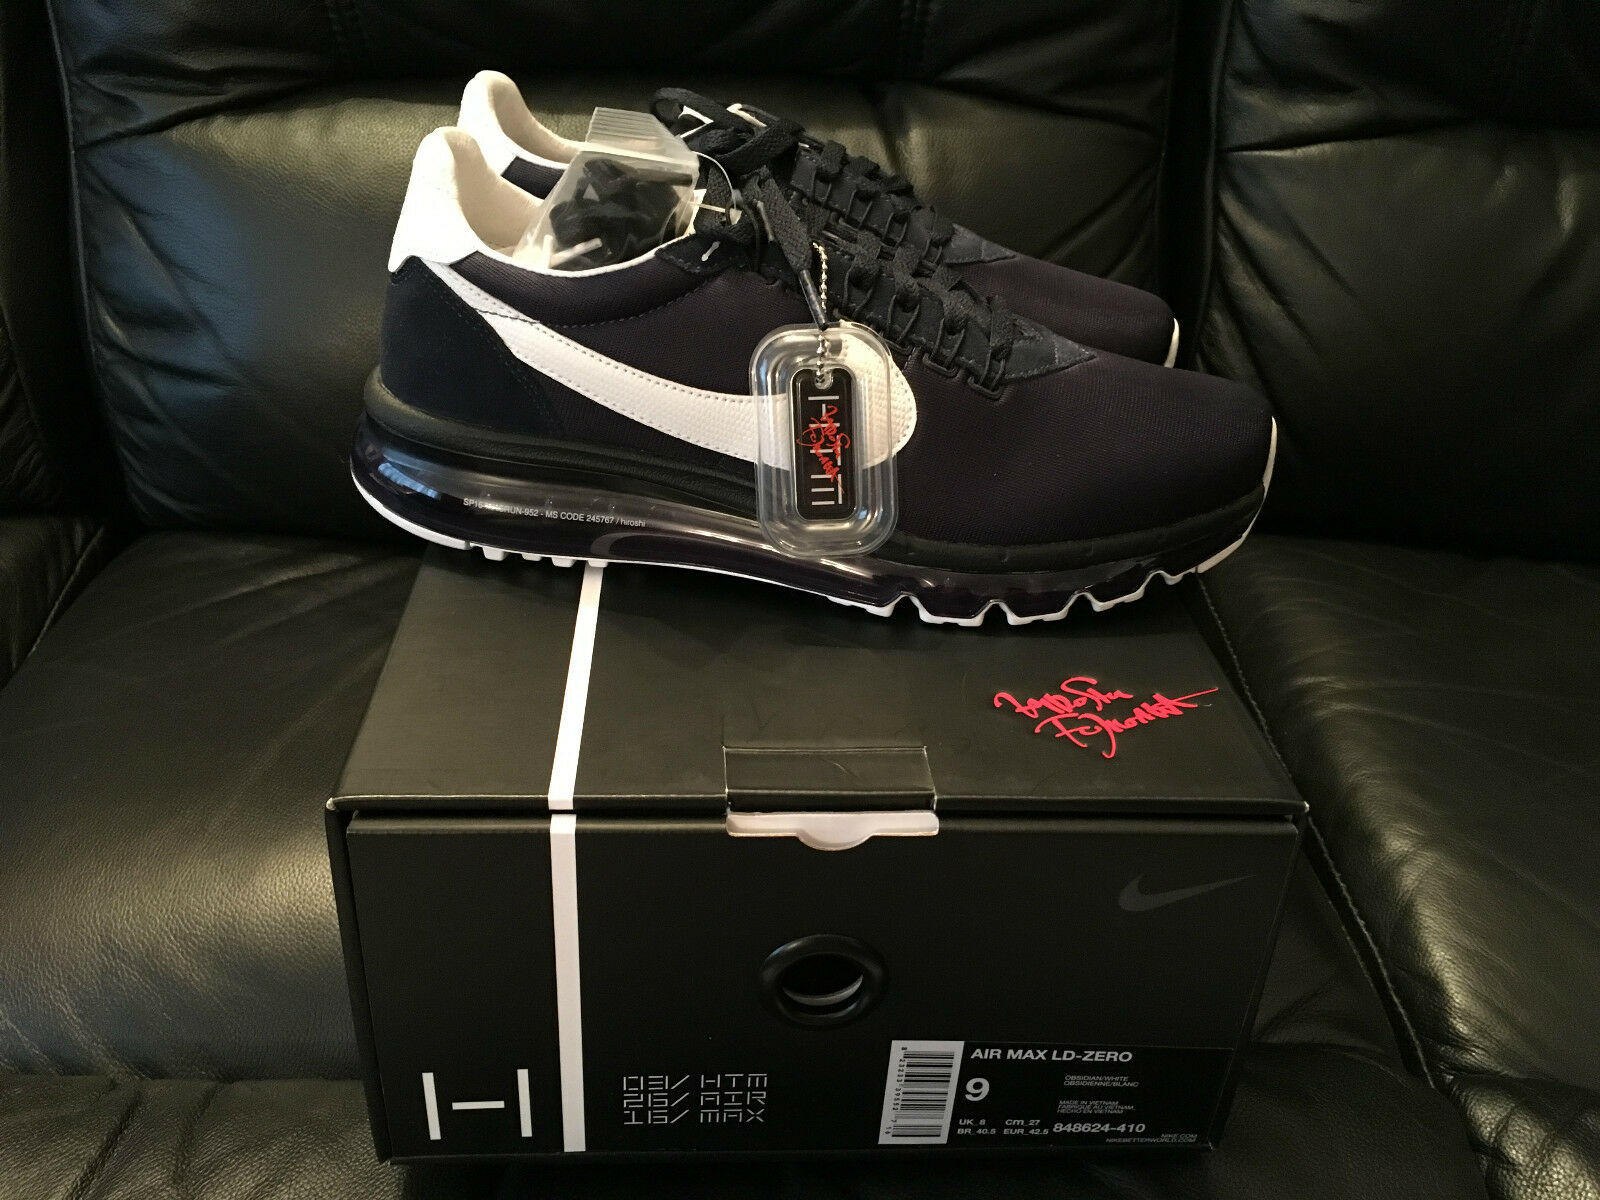 nike air max ld - taille 0 h formateurs chaussures baskets taille - nouveau ce4fb1